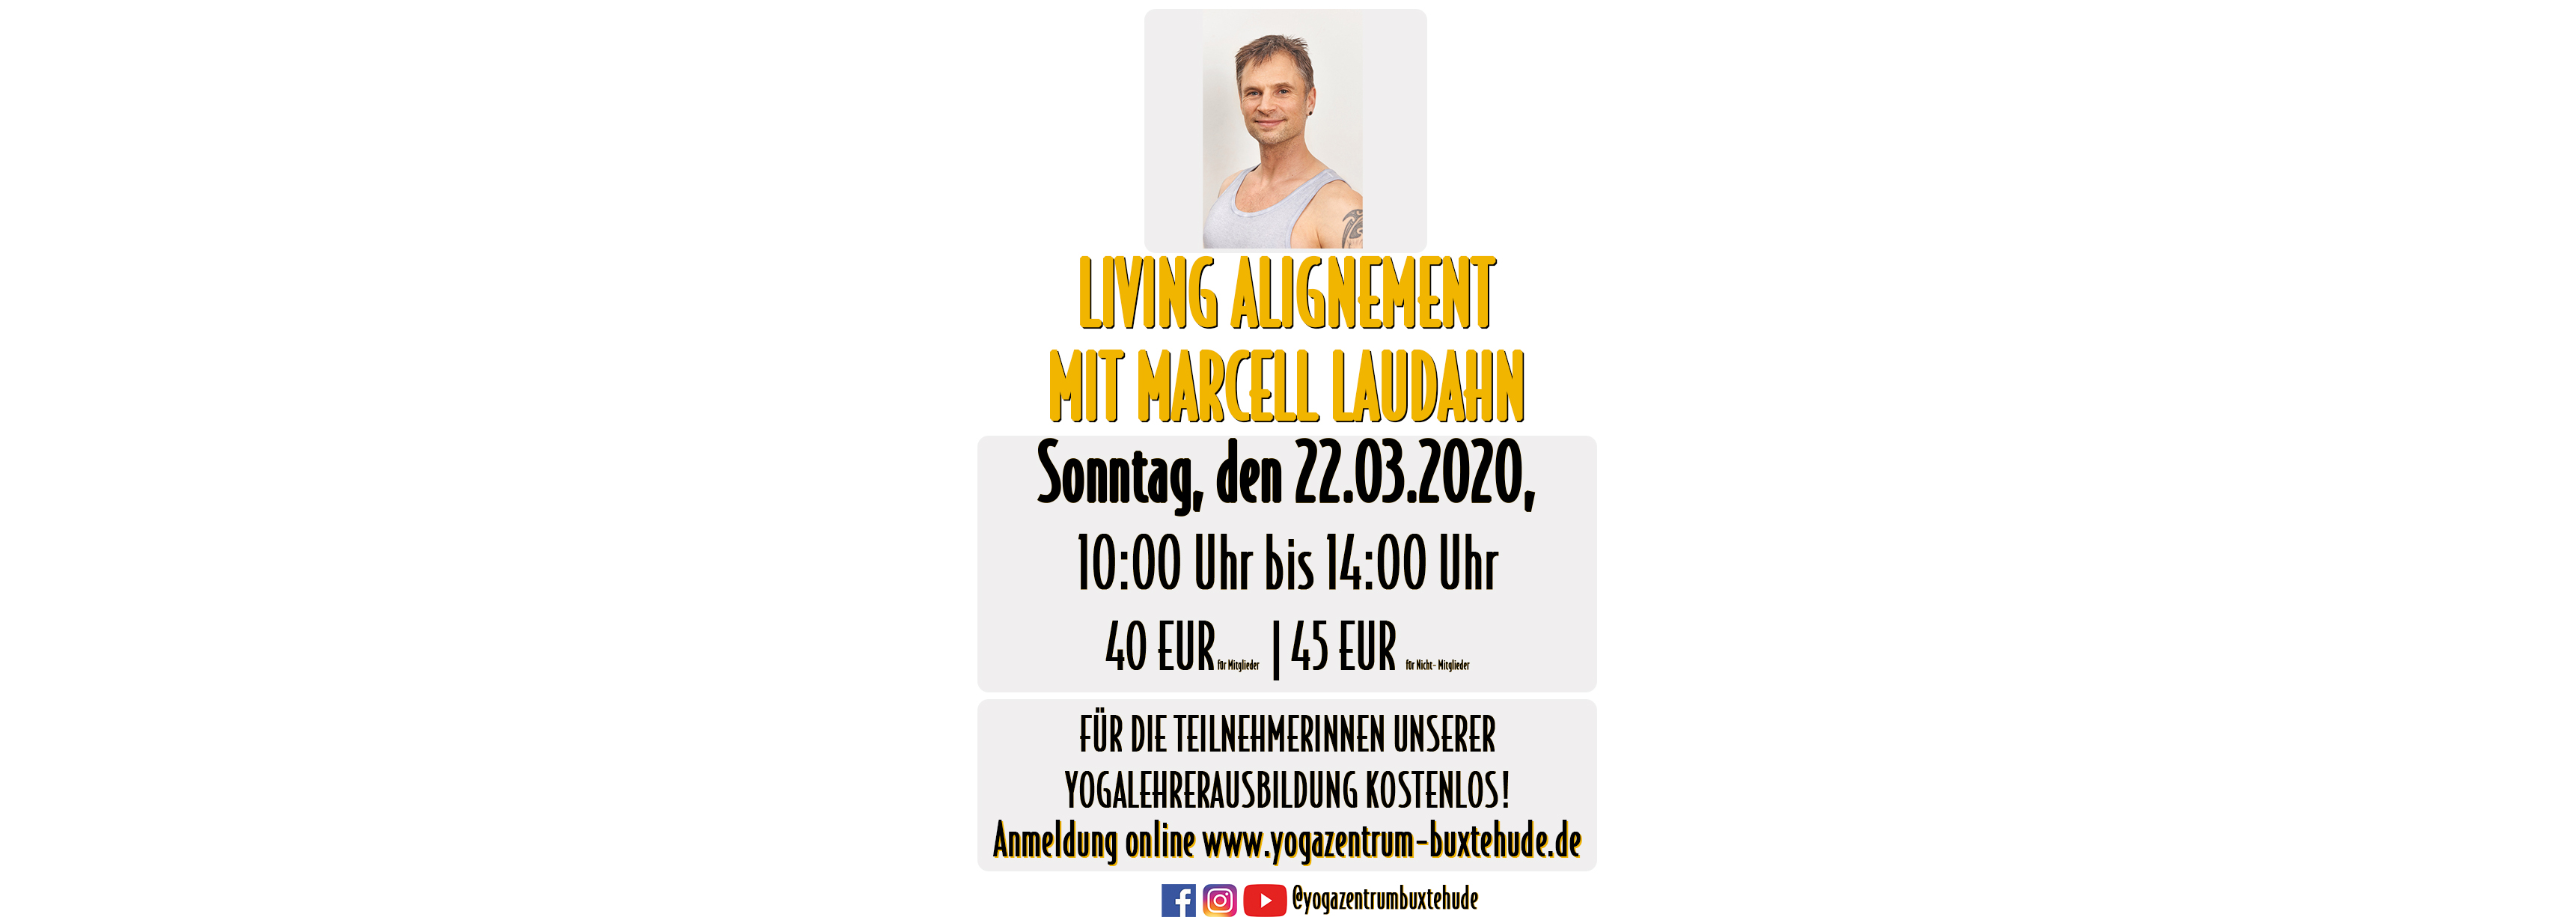 yoga buxtehude marcell laudahn yoma bremen living alignement